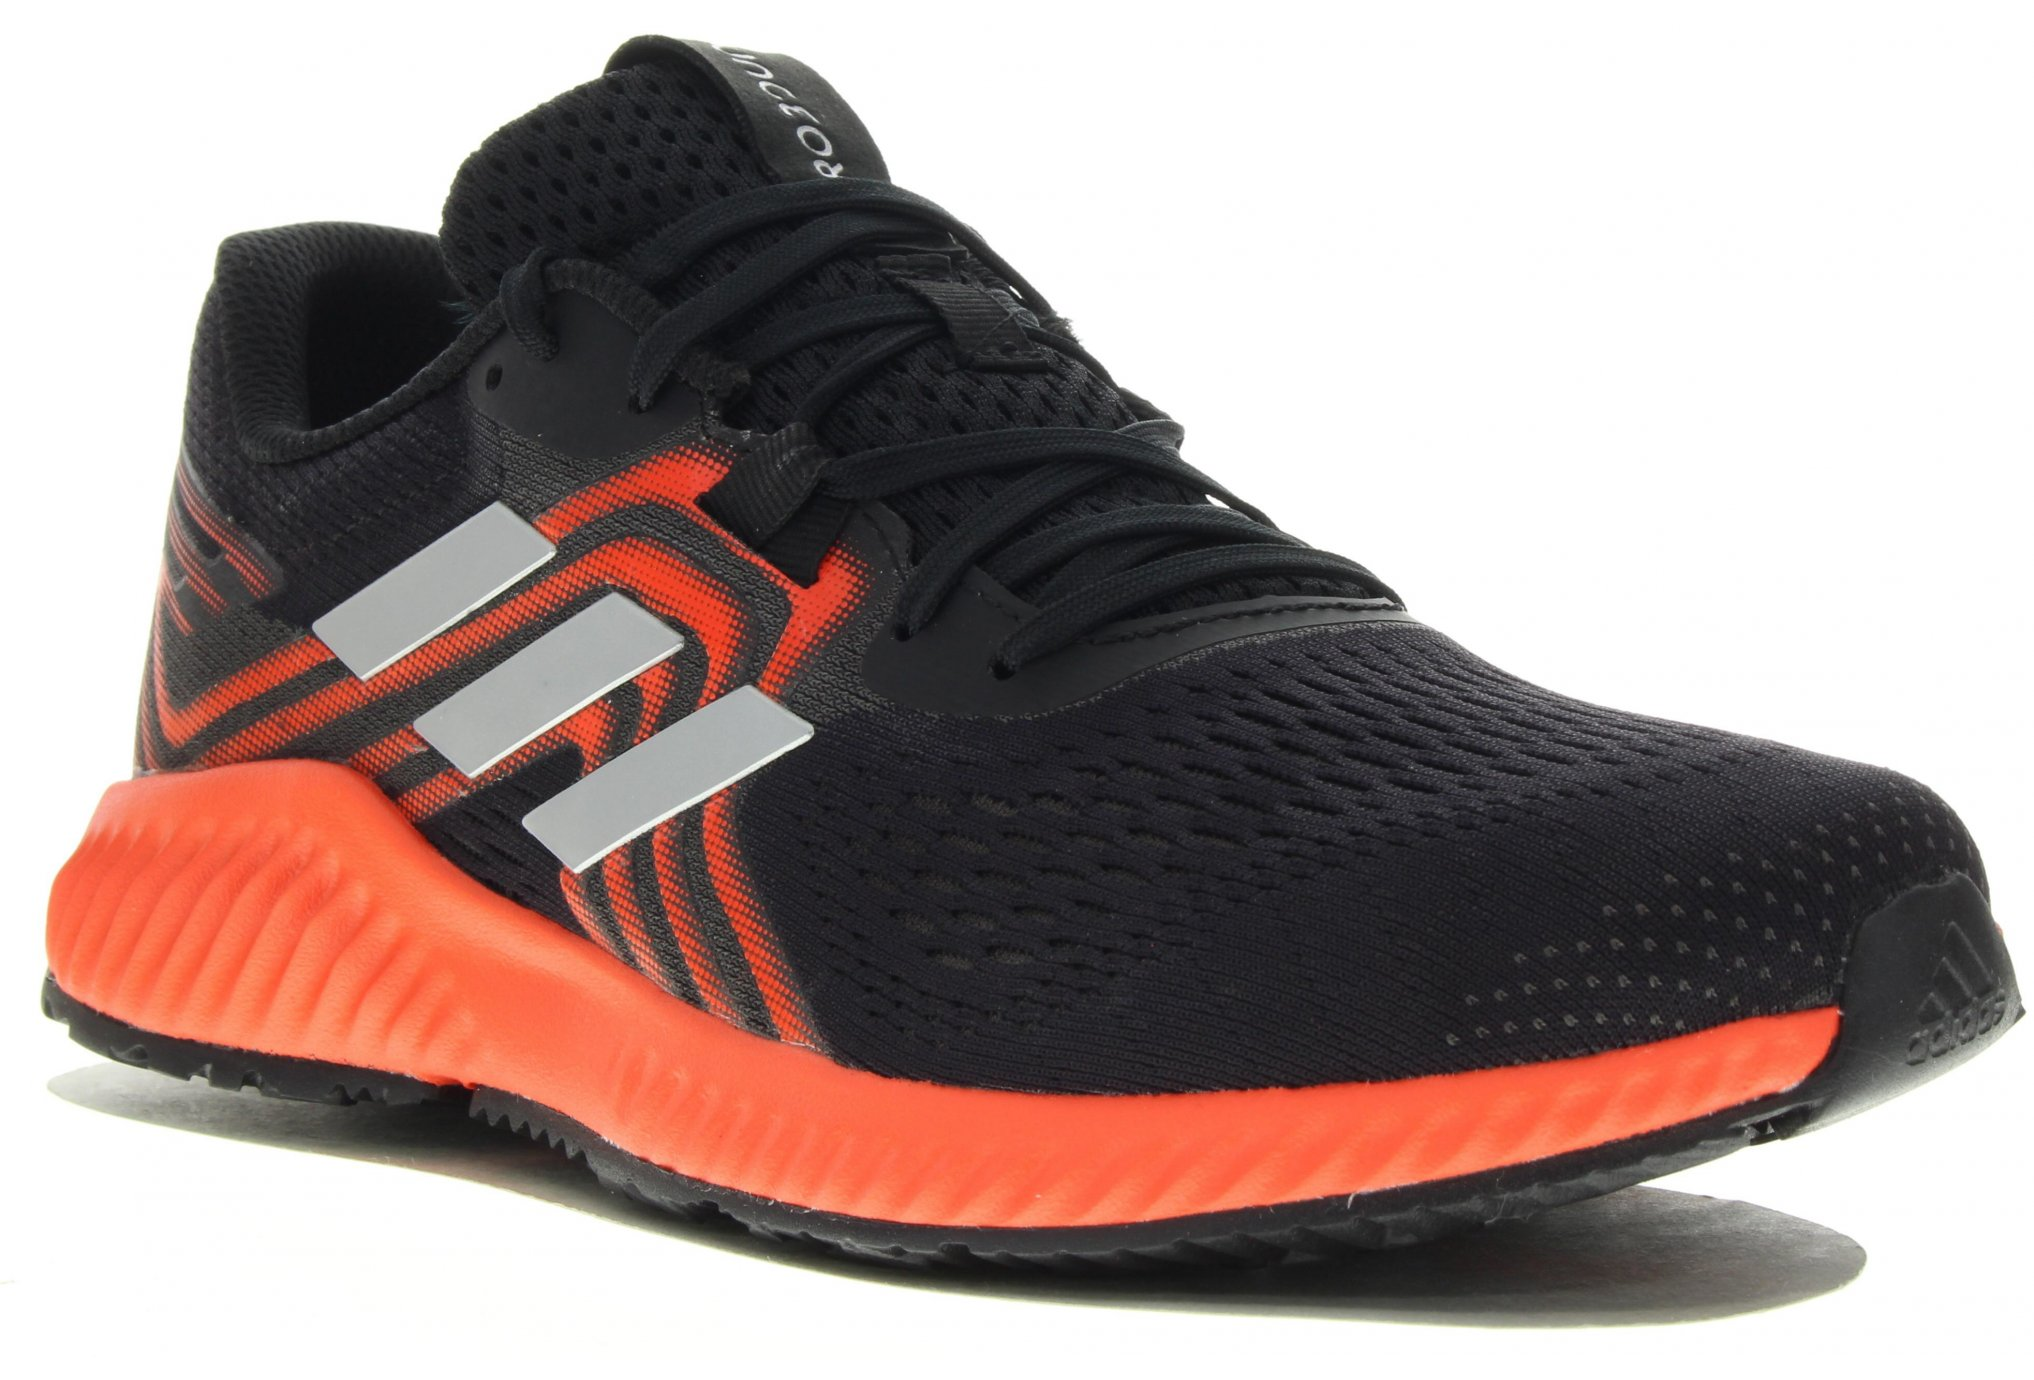 Adidas Aerobounce 2 m chaussures homme